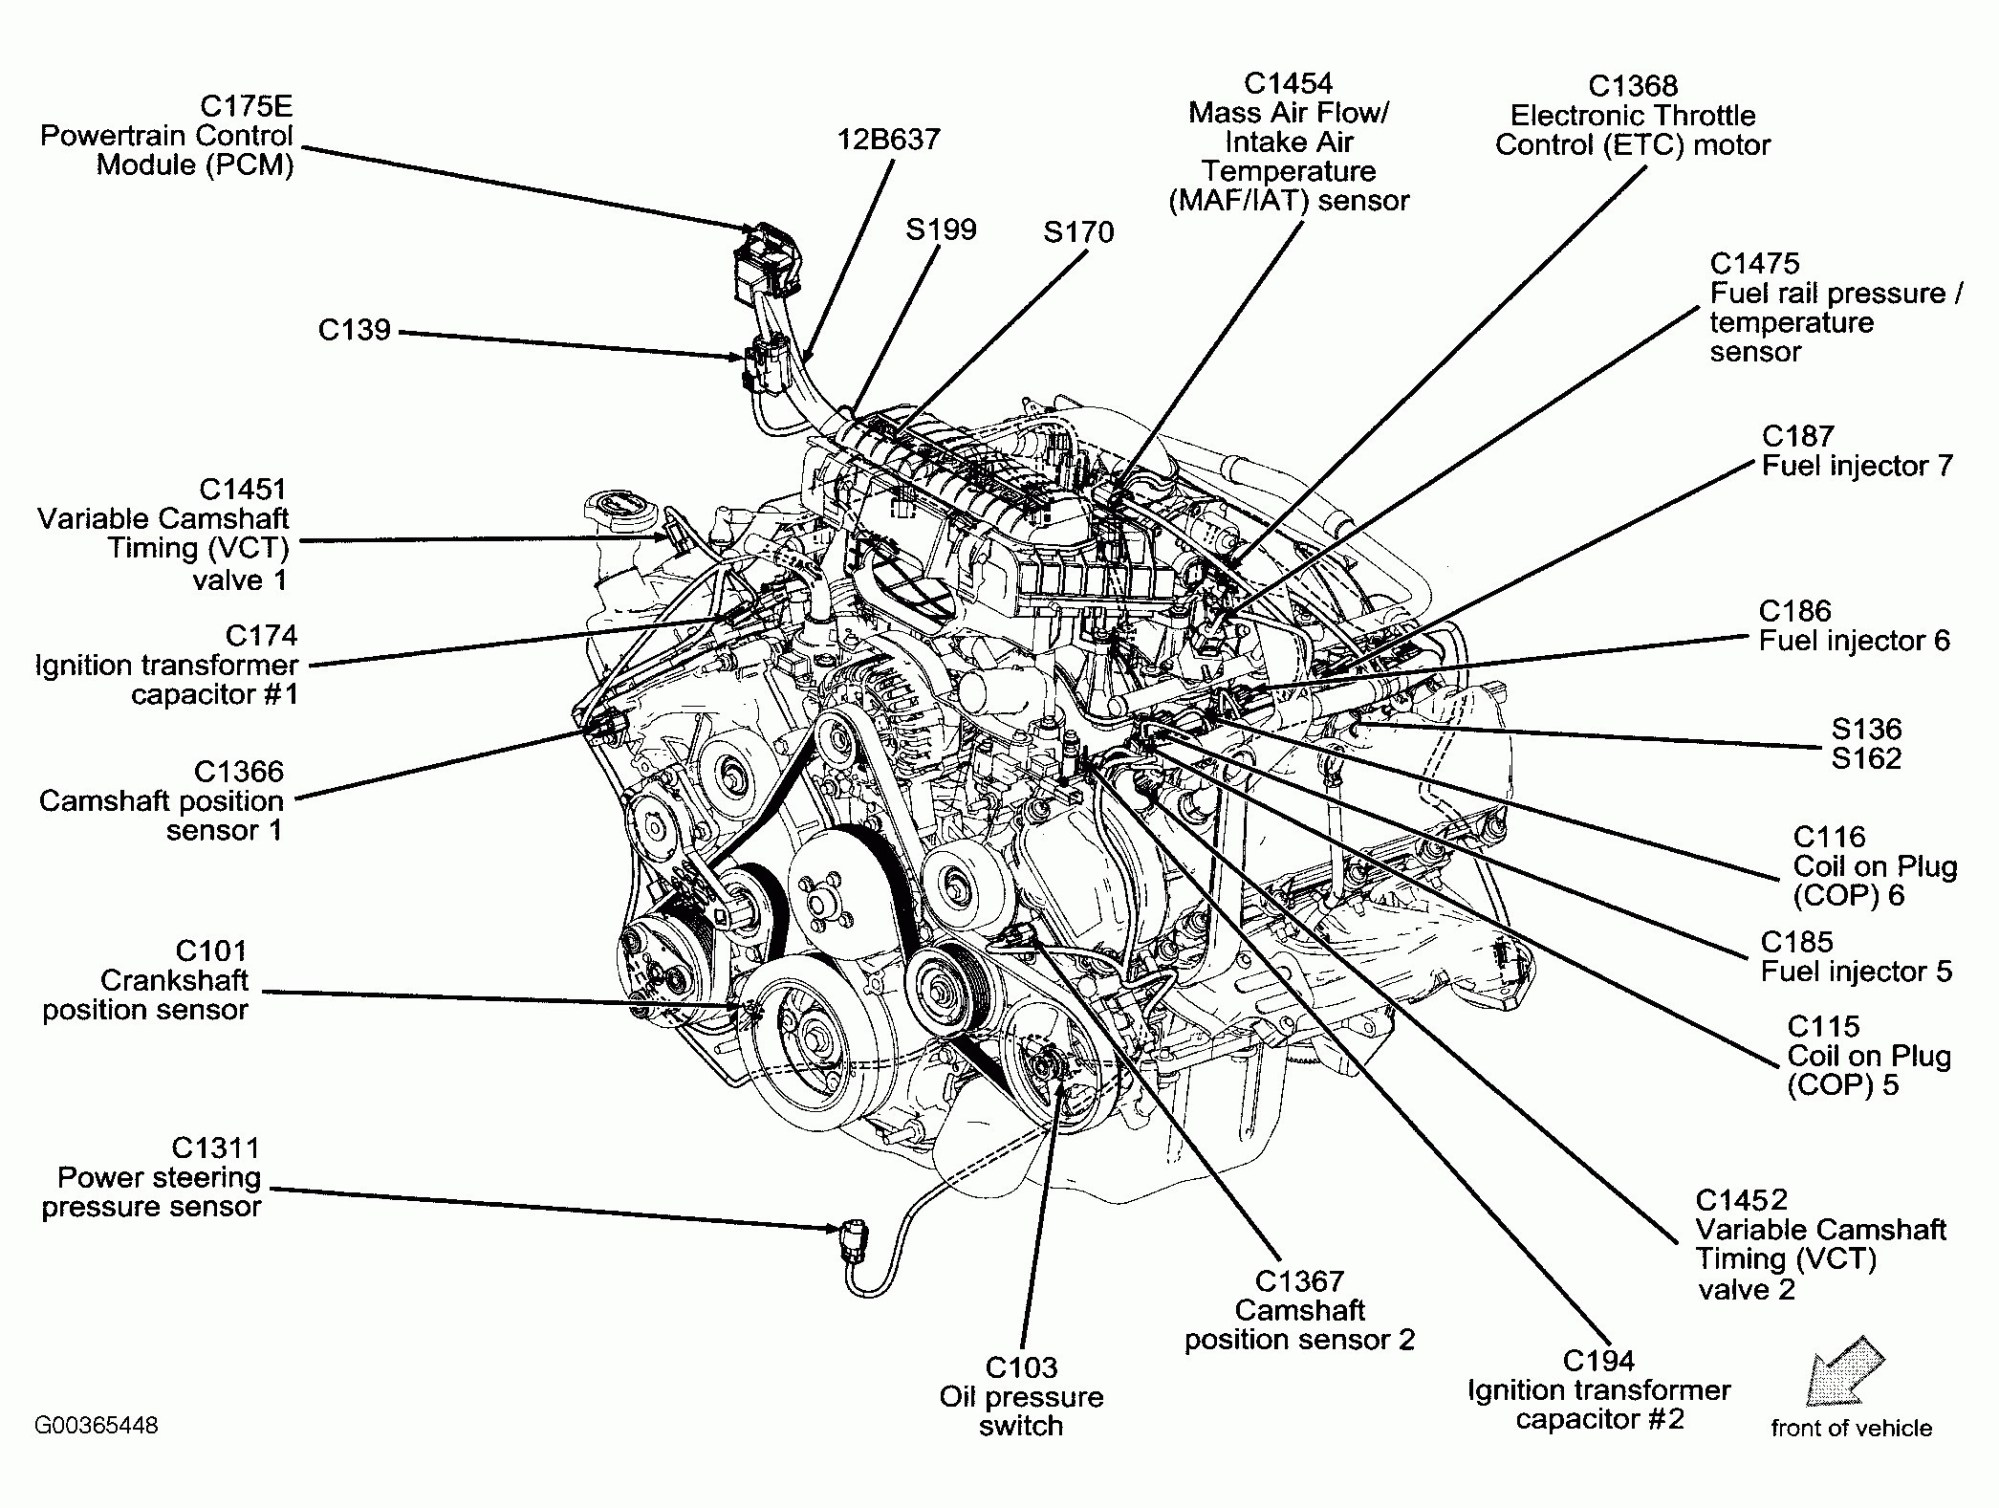 hight resolution of 2001 ford expedition engine diagram wiring diagram post5 4 triton engine diagram 2001 expedition wiring diagram